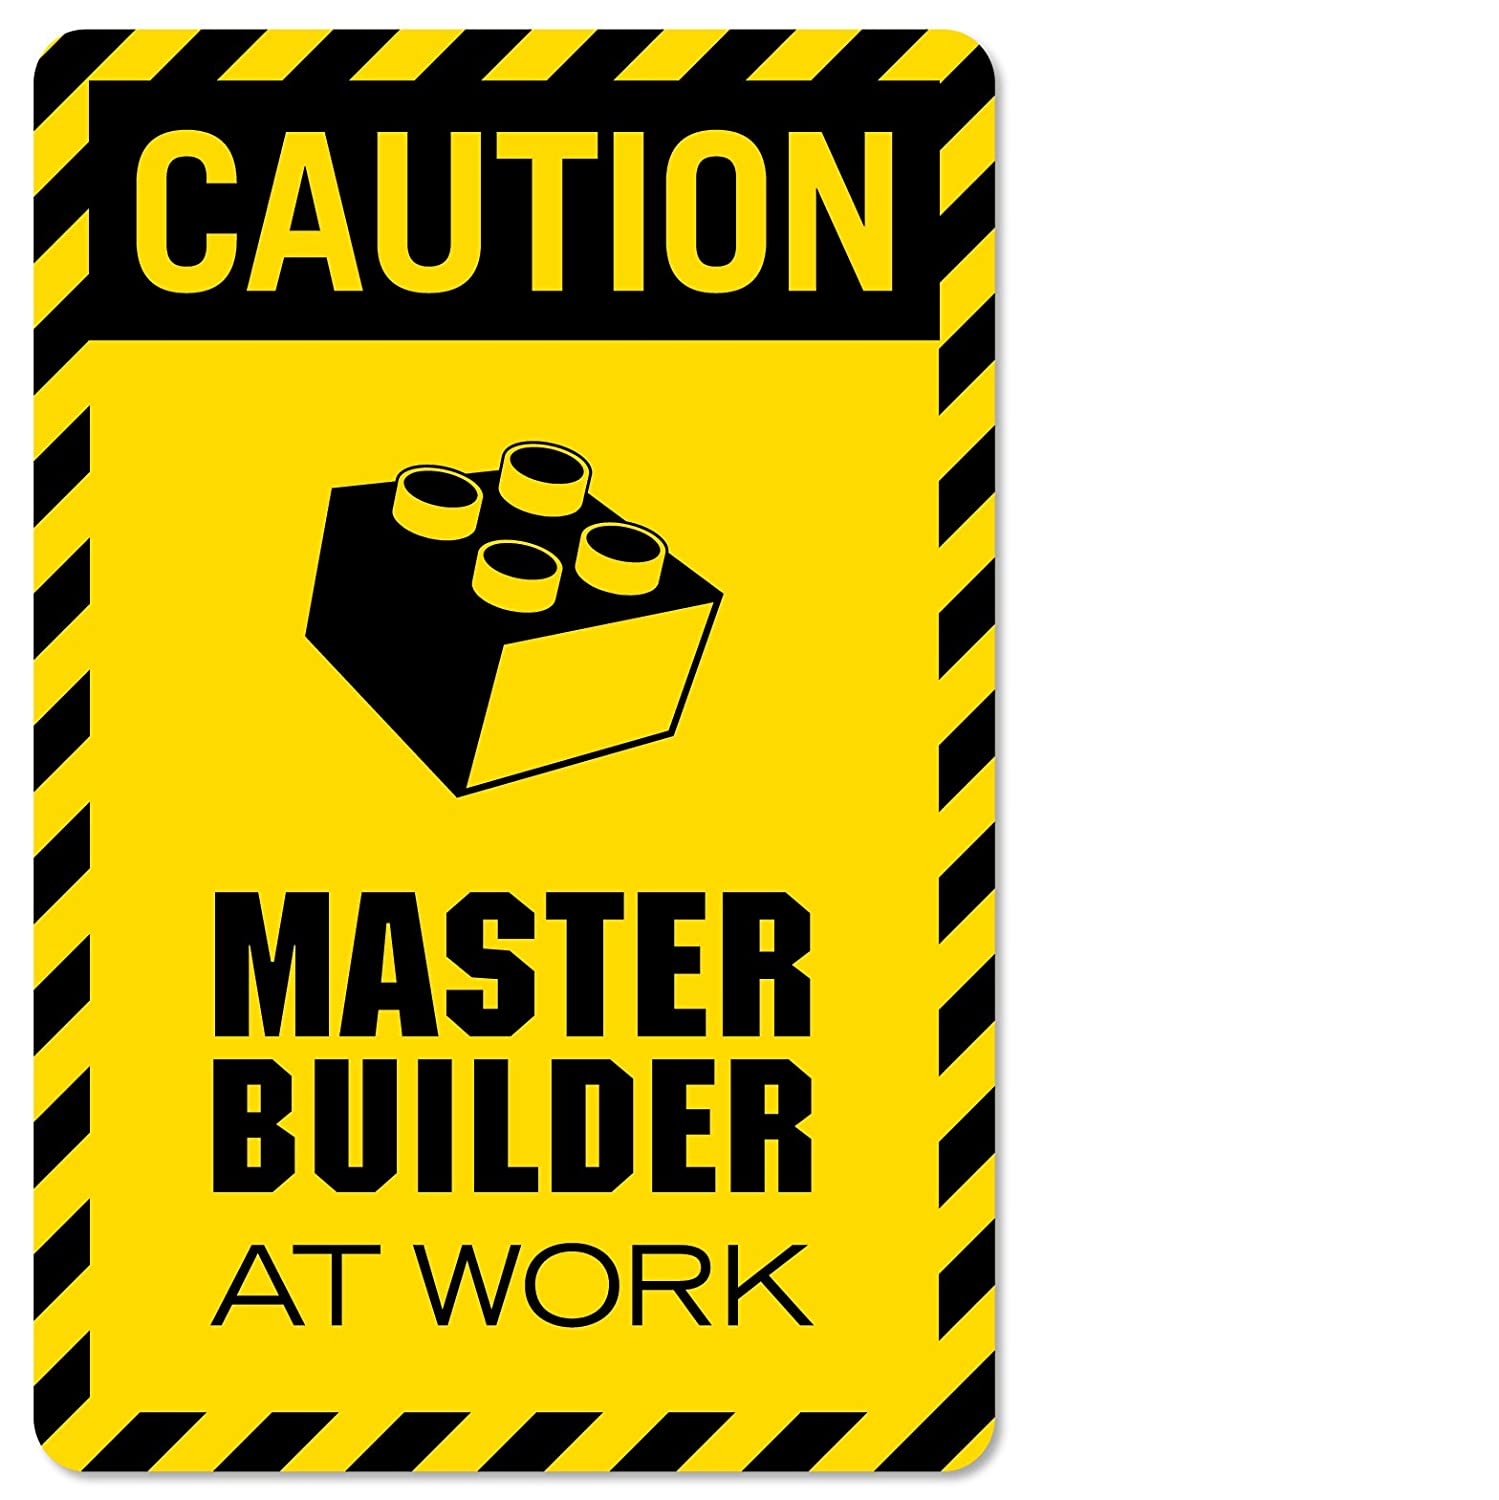 Caution Master Builder at Work Vinyl Decal Wall Decor Print for Lego Theme Rooms and brickbuilders p2320 (Small-7x10.5, DISP)